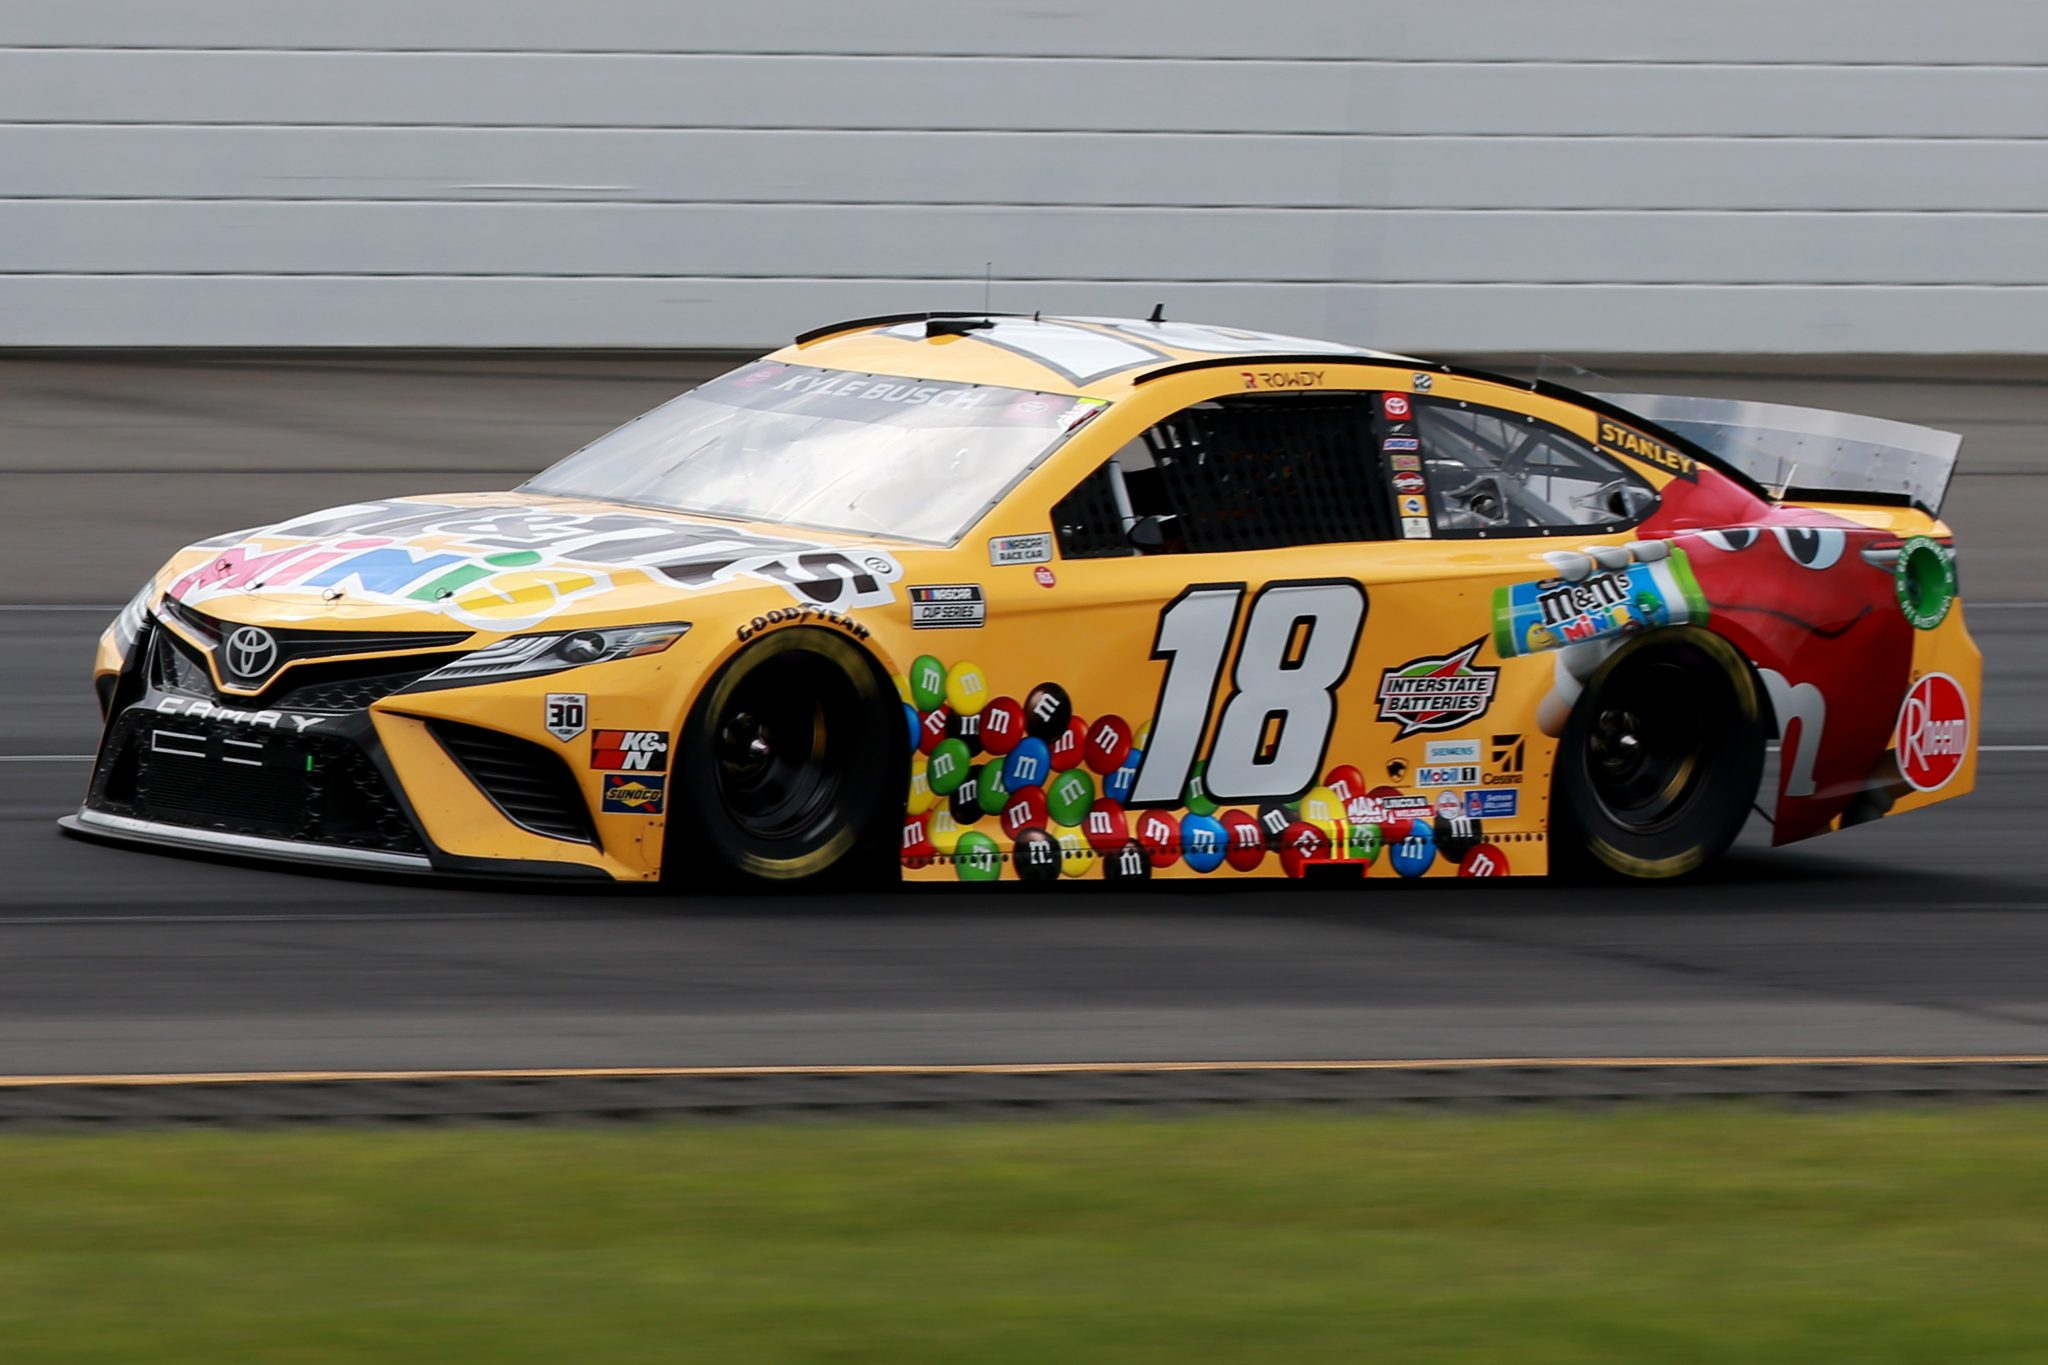 LONG POND, PENNSYLVANIA - JUNE 26: Kyle Busch, driver of the #18 M&M's Mini's Toyota, drives during the NASCAR Cup Series Pocono Organics CBD 325 at Pocono Raceway on June 26, 2021 in Long Pond, Pennsylvania. (Photo by Sean Gardner/Getty Images) | Getty Images